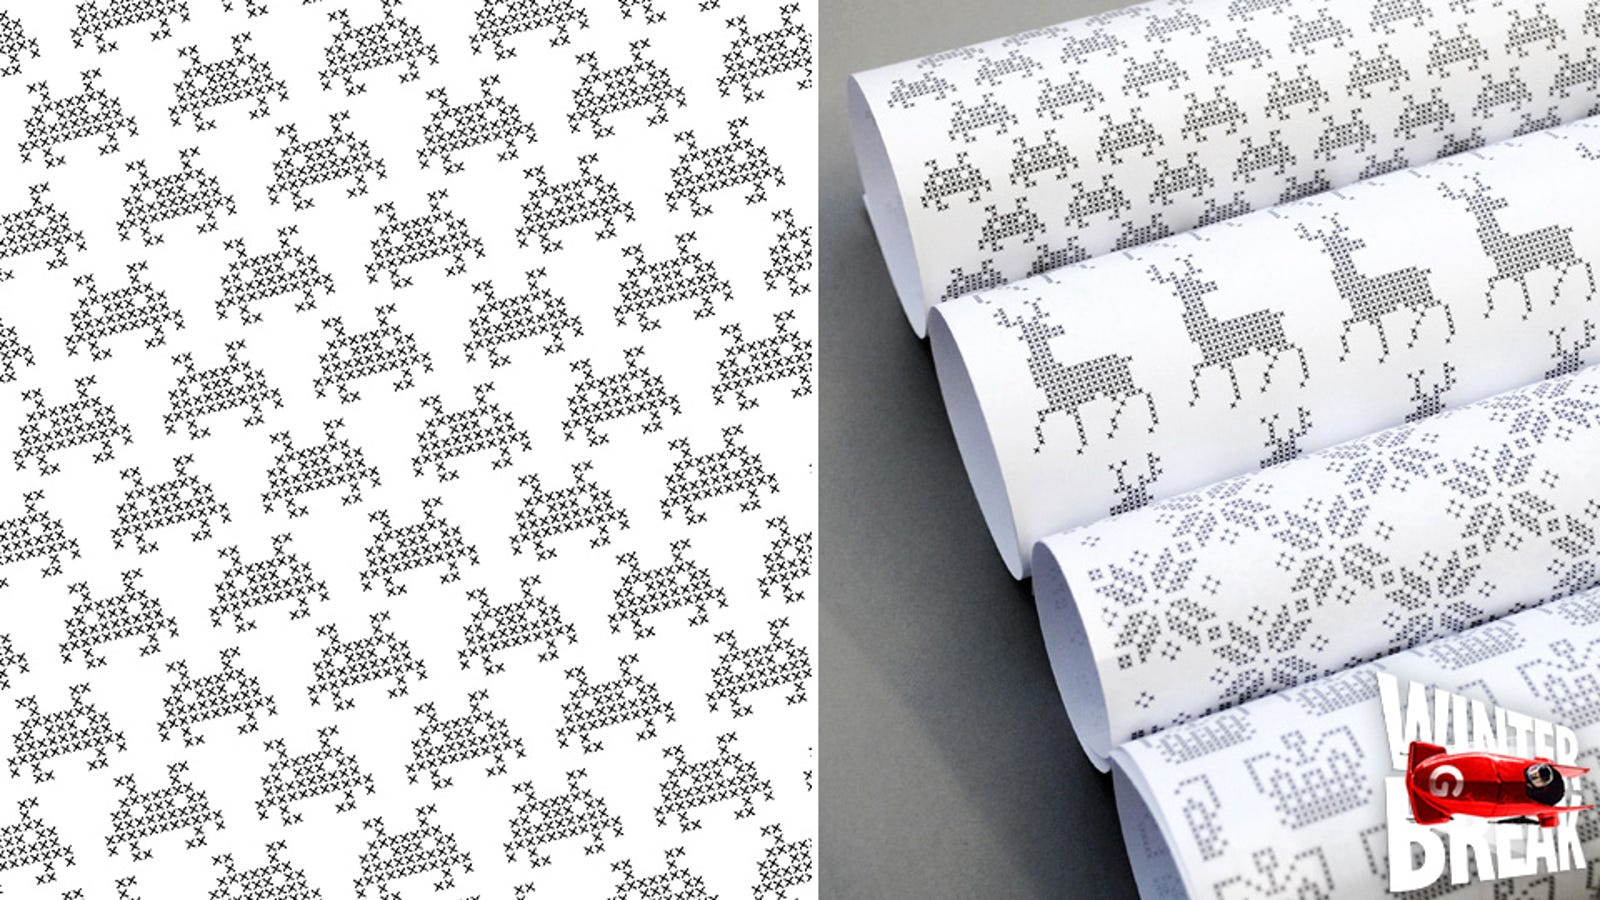 Download Some Free Pixelated Gift Wrap and Do the Holidays